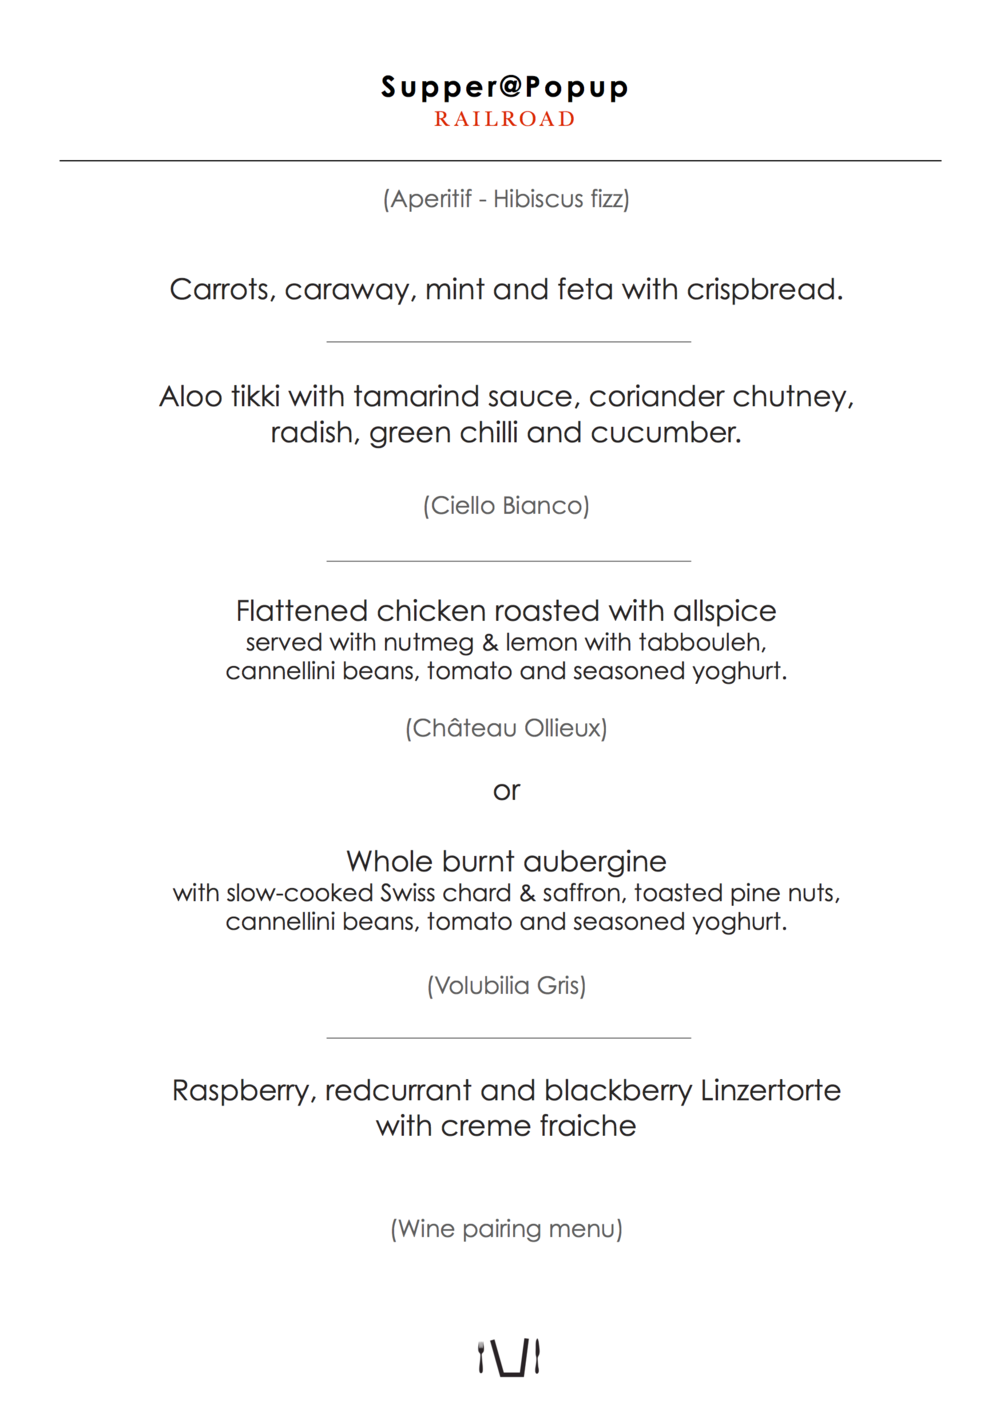 2015-08 supper popup printed table menu RAILROAD.png